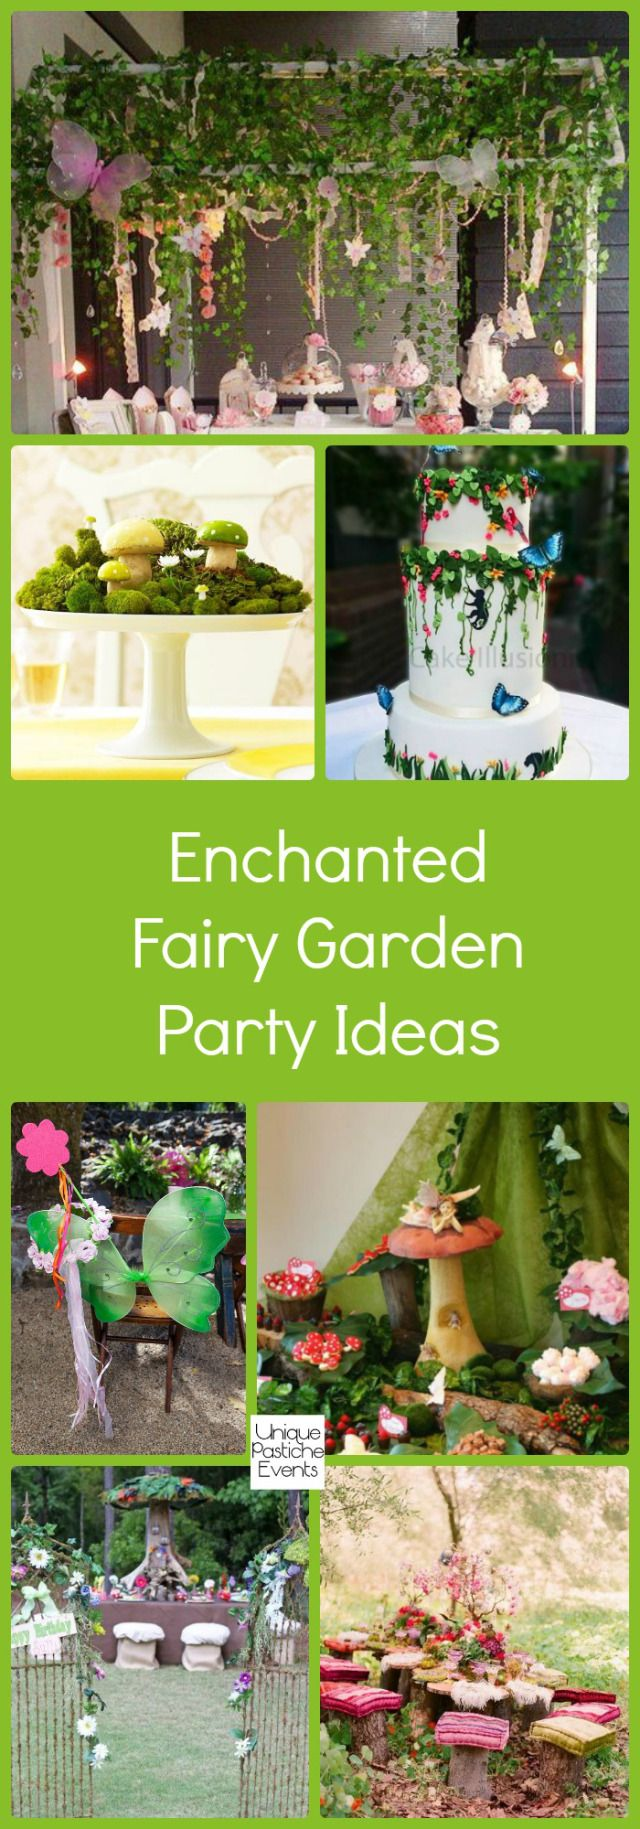 enchanted fairy garden party ideas ideaboard inspirationboard